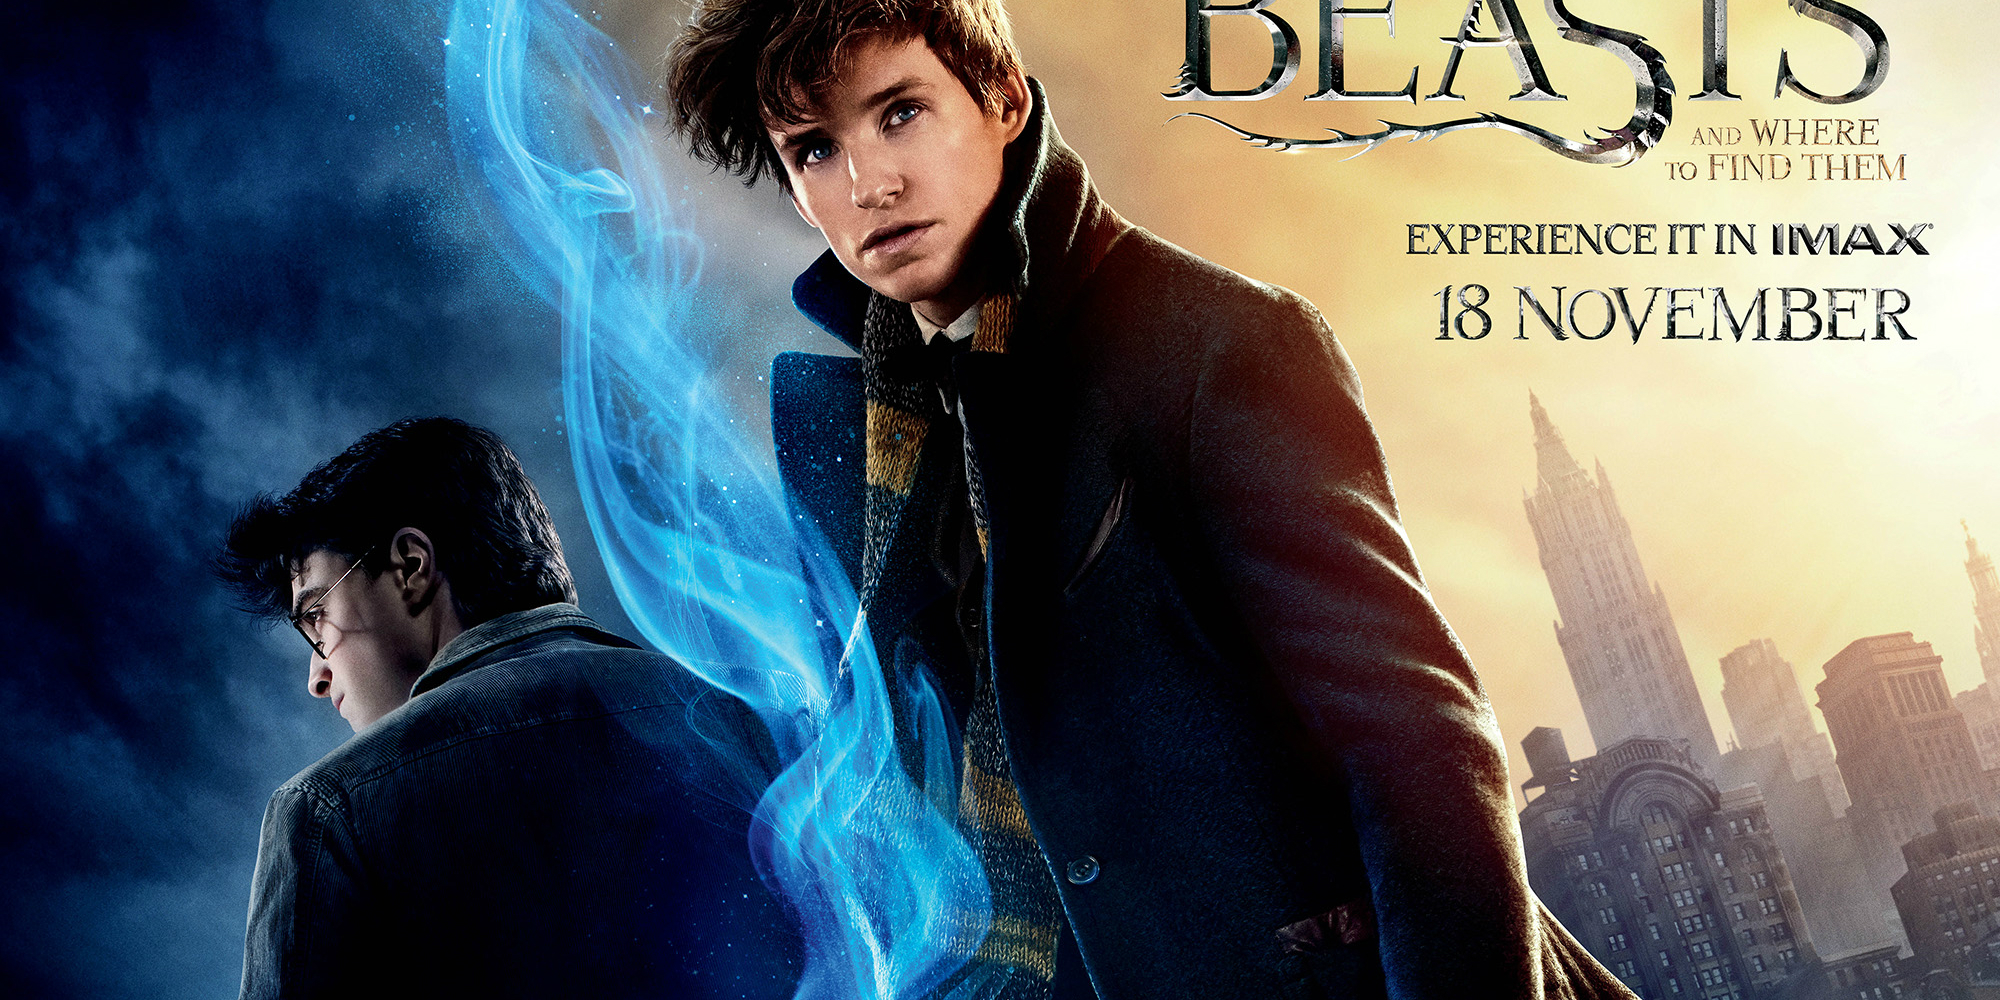 harry potter movies to get imax rerelease ahead of